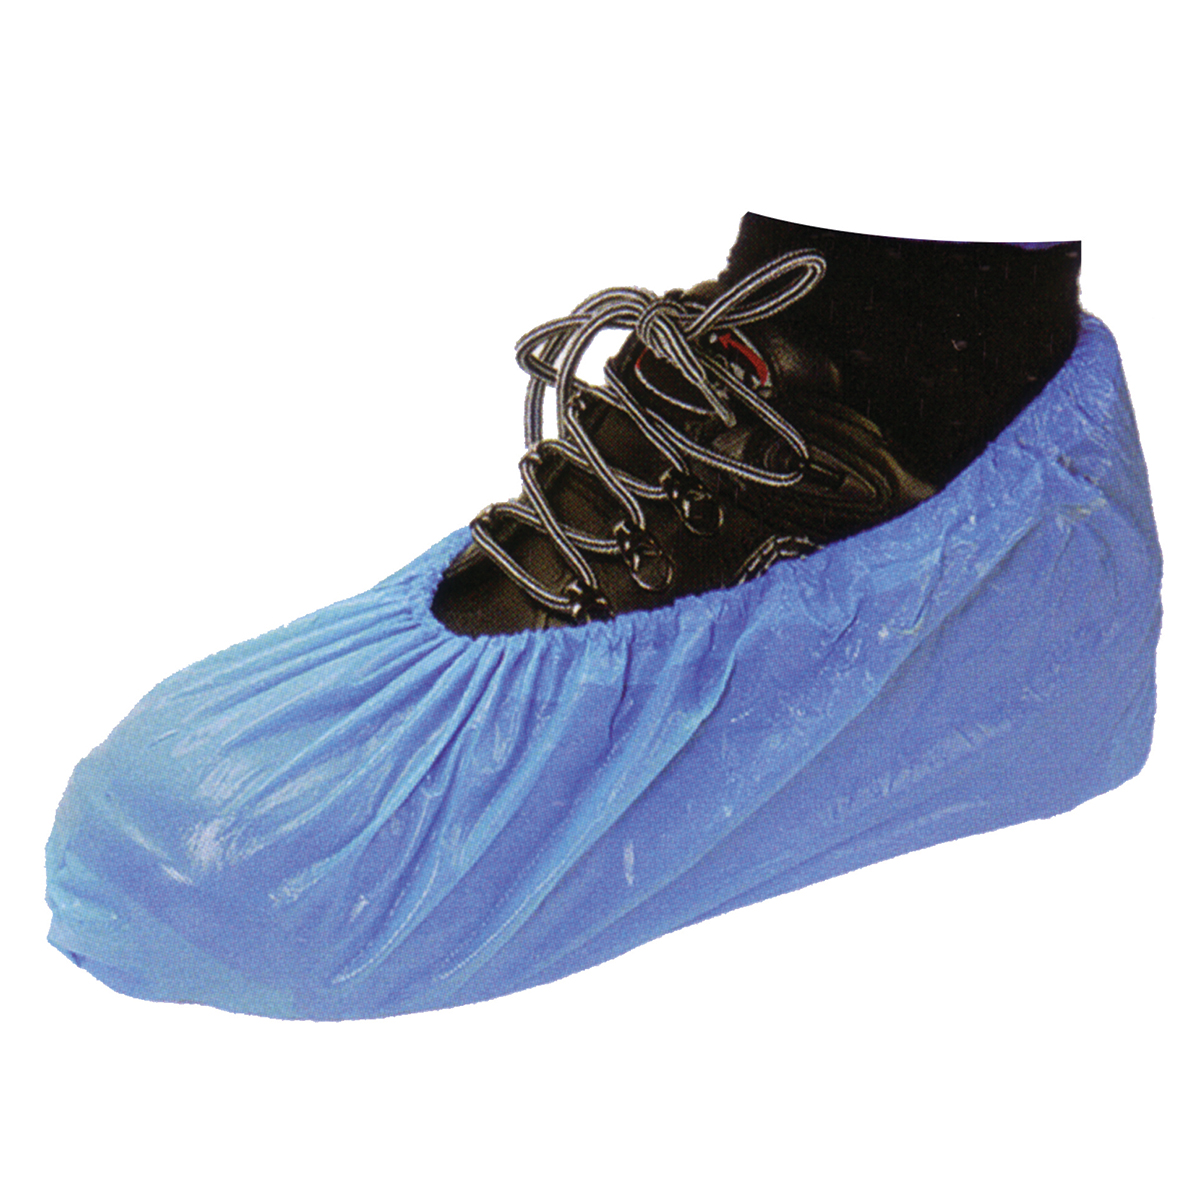 Pack of 100 Disposable Overshoes